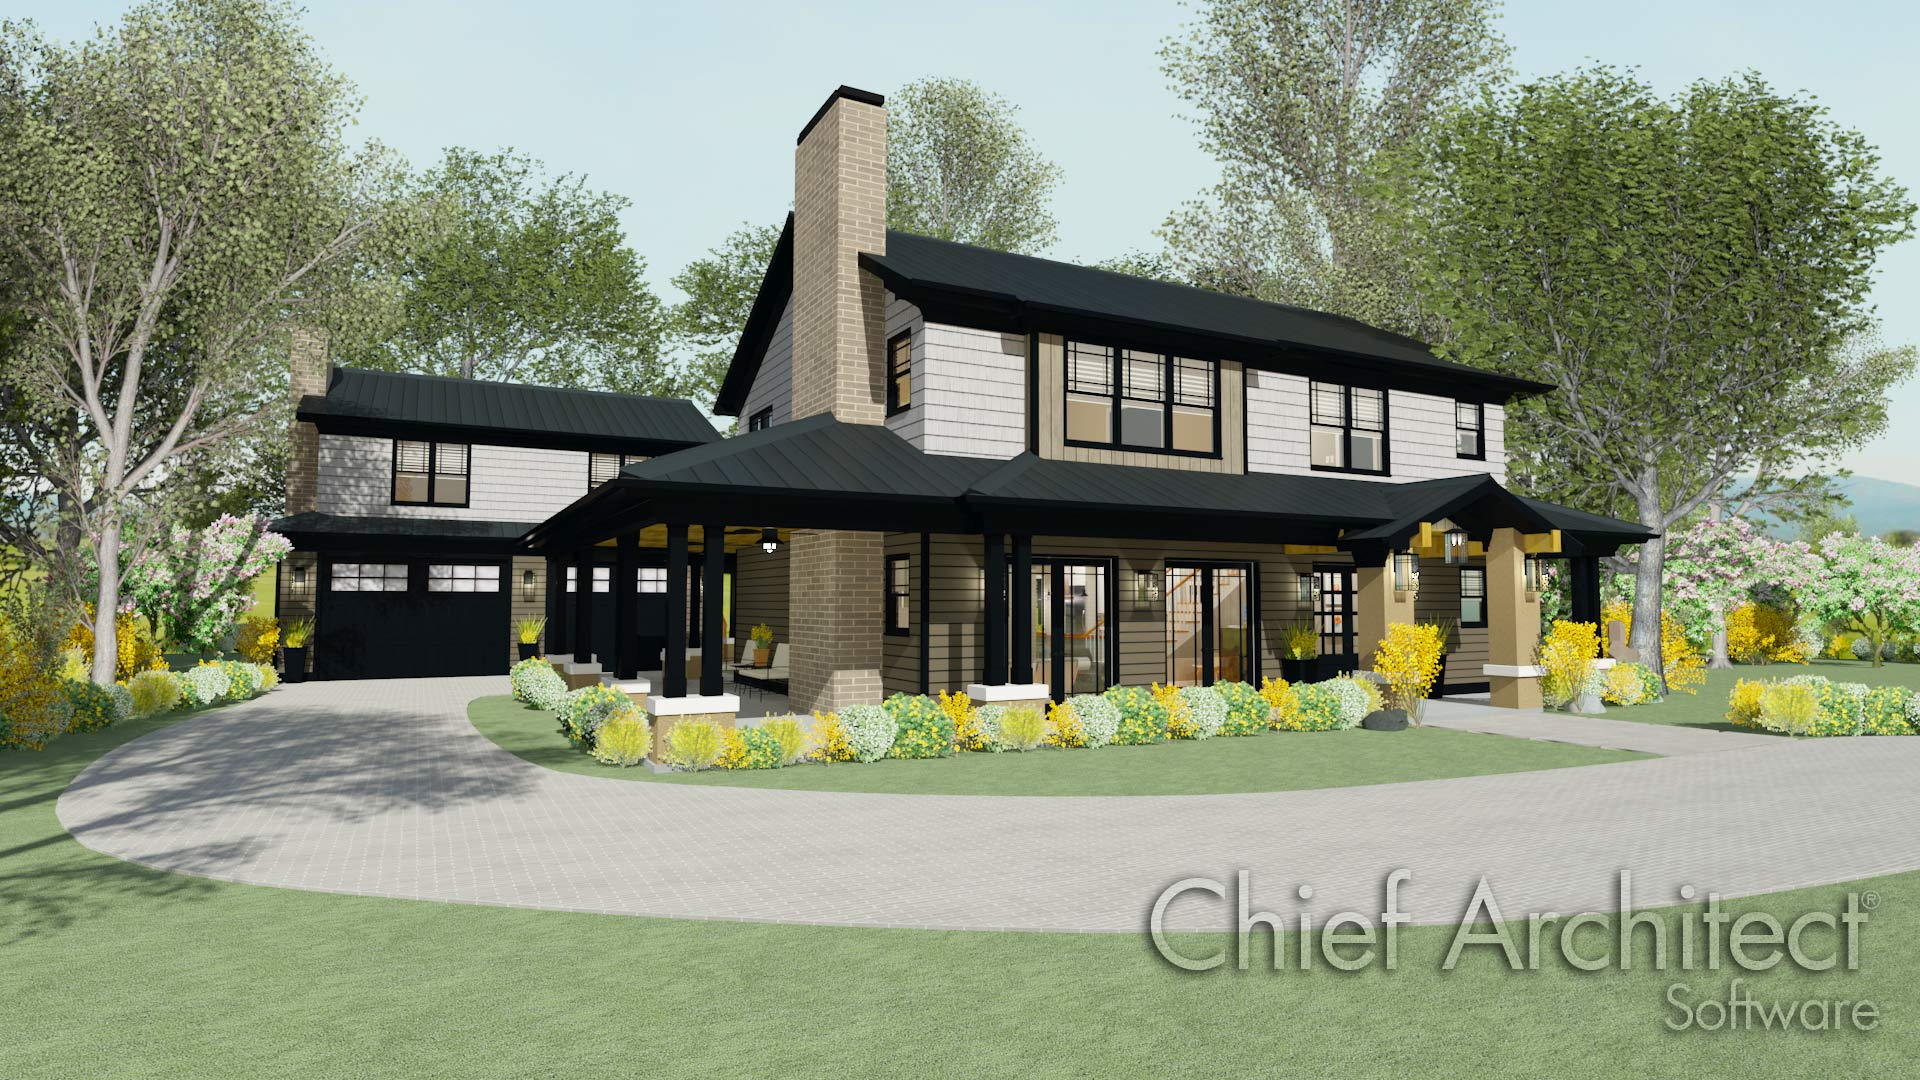 Chief architect home design software samples gallery for Architect home plans